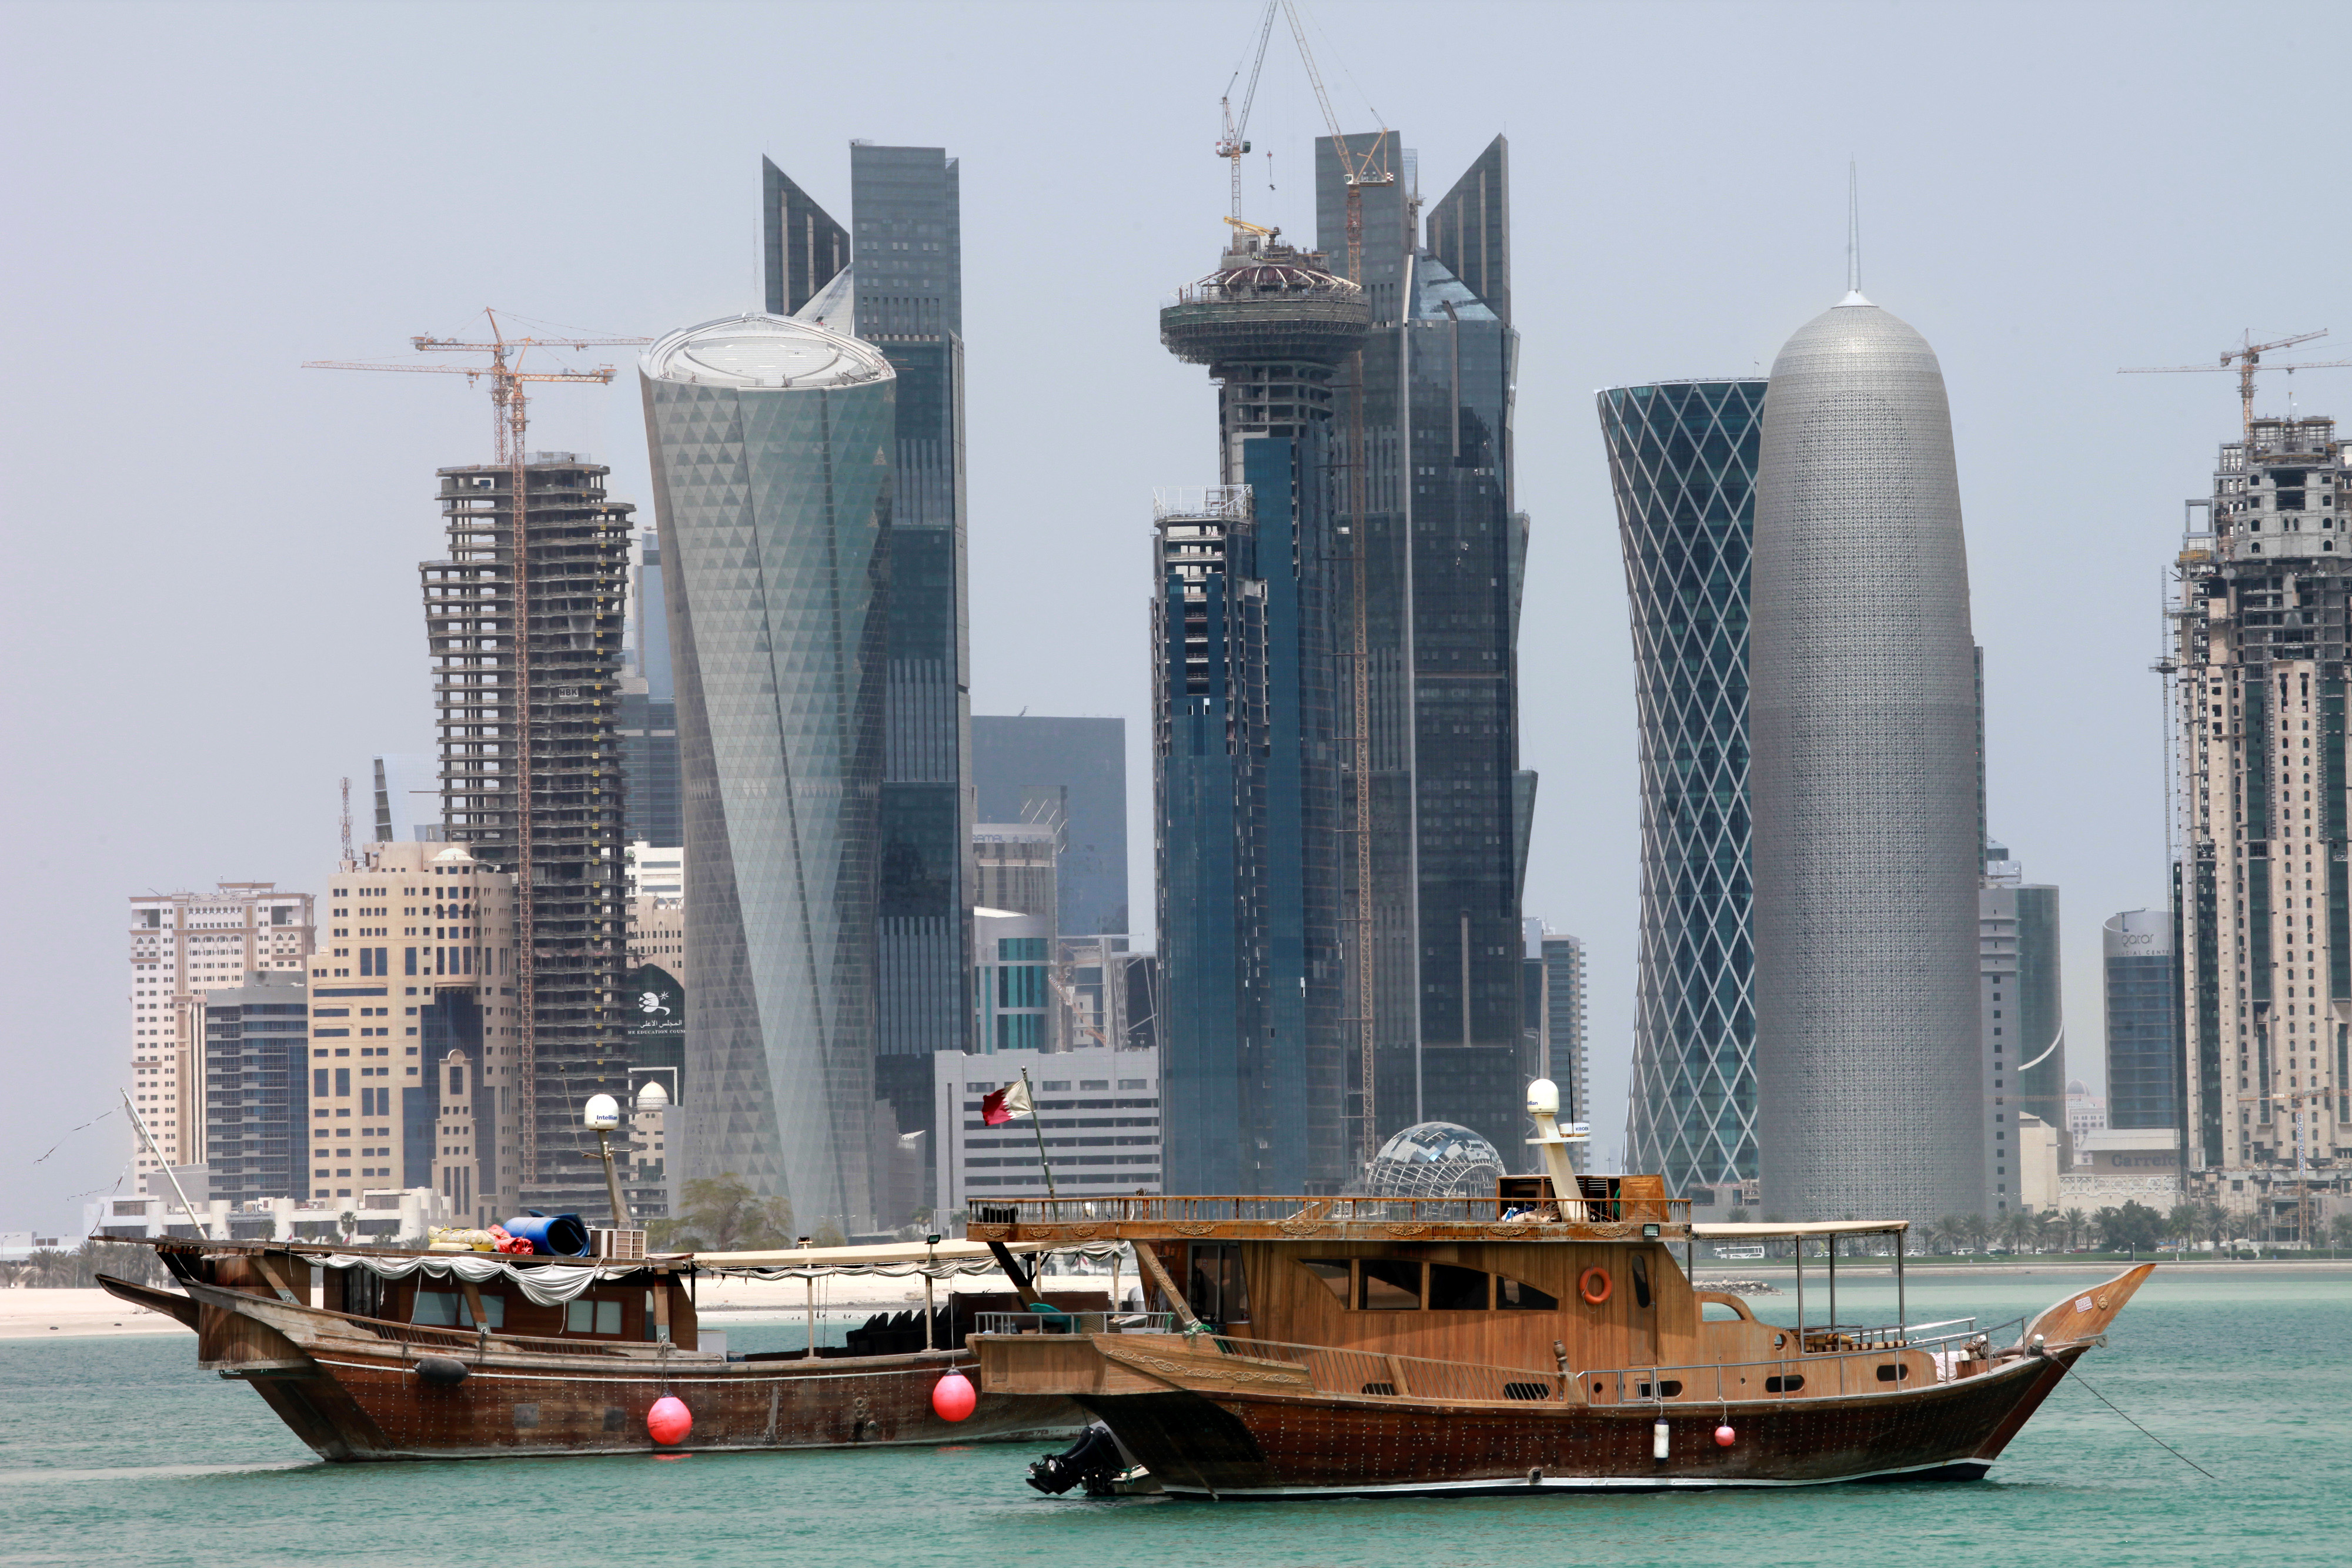 Qatar allows visa-free entry for citizens of 80 countries